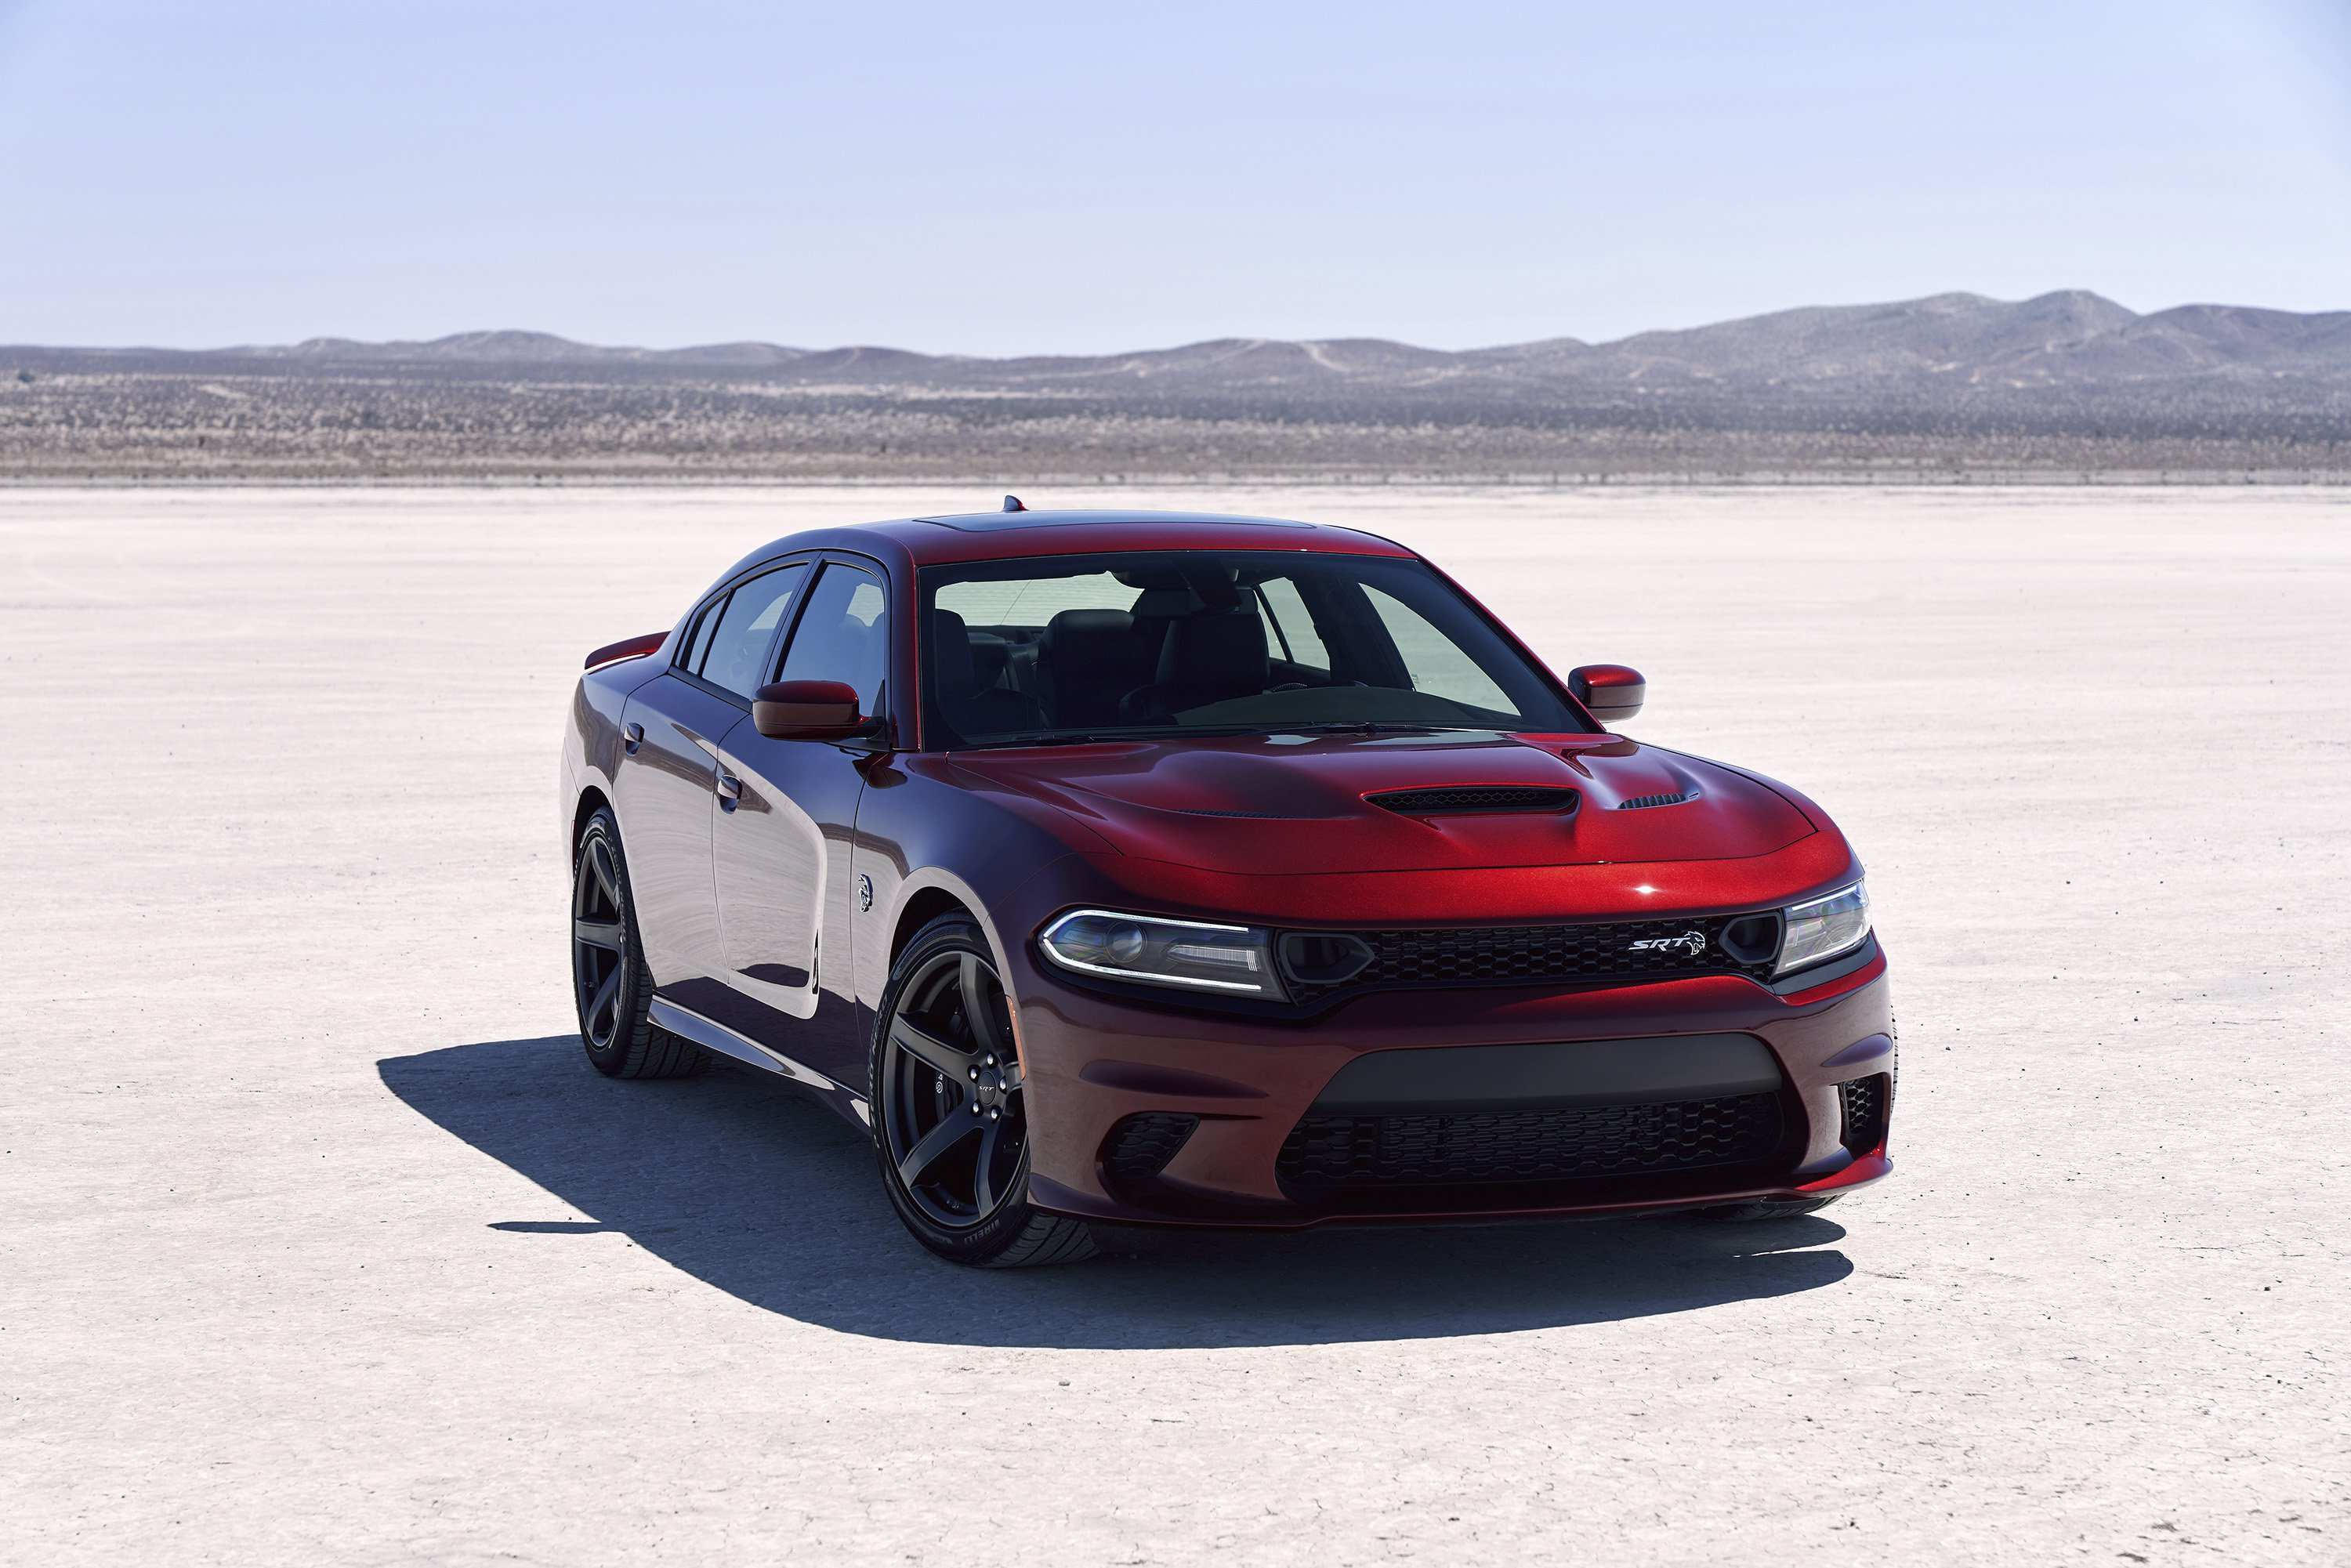 79 Gallery of 2020 Dodge Charger Update Exterior and Interior with 2020 Dodge Charger Update